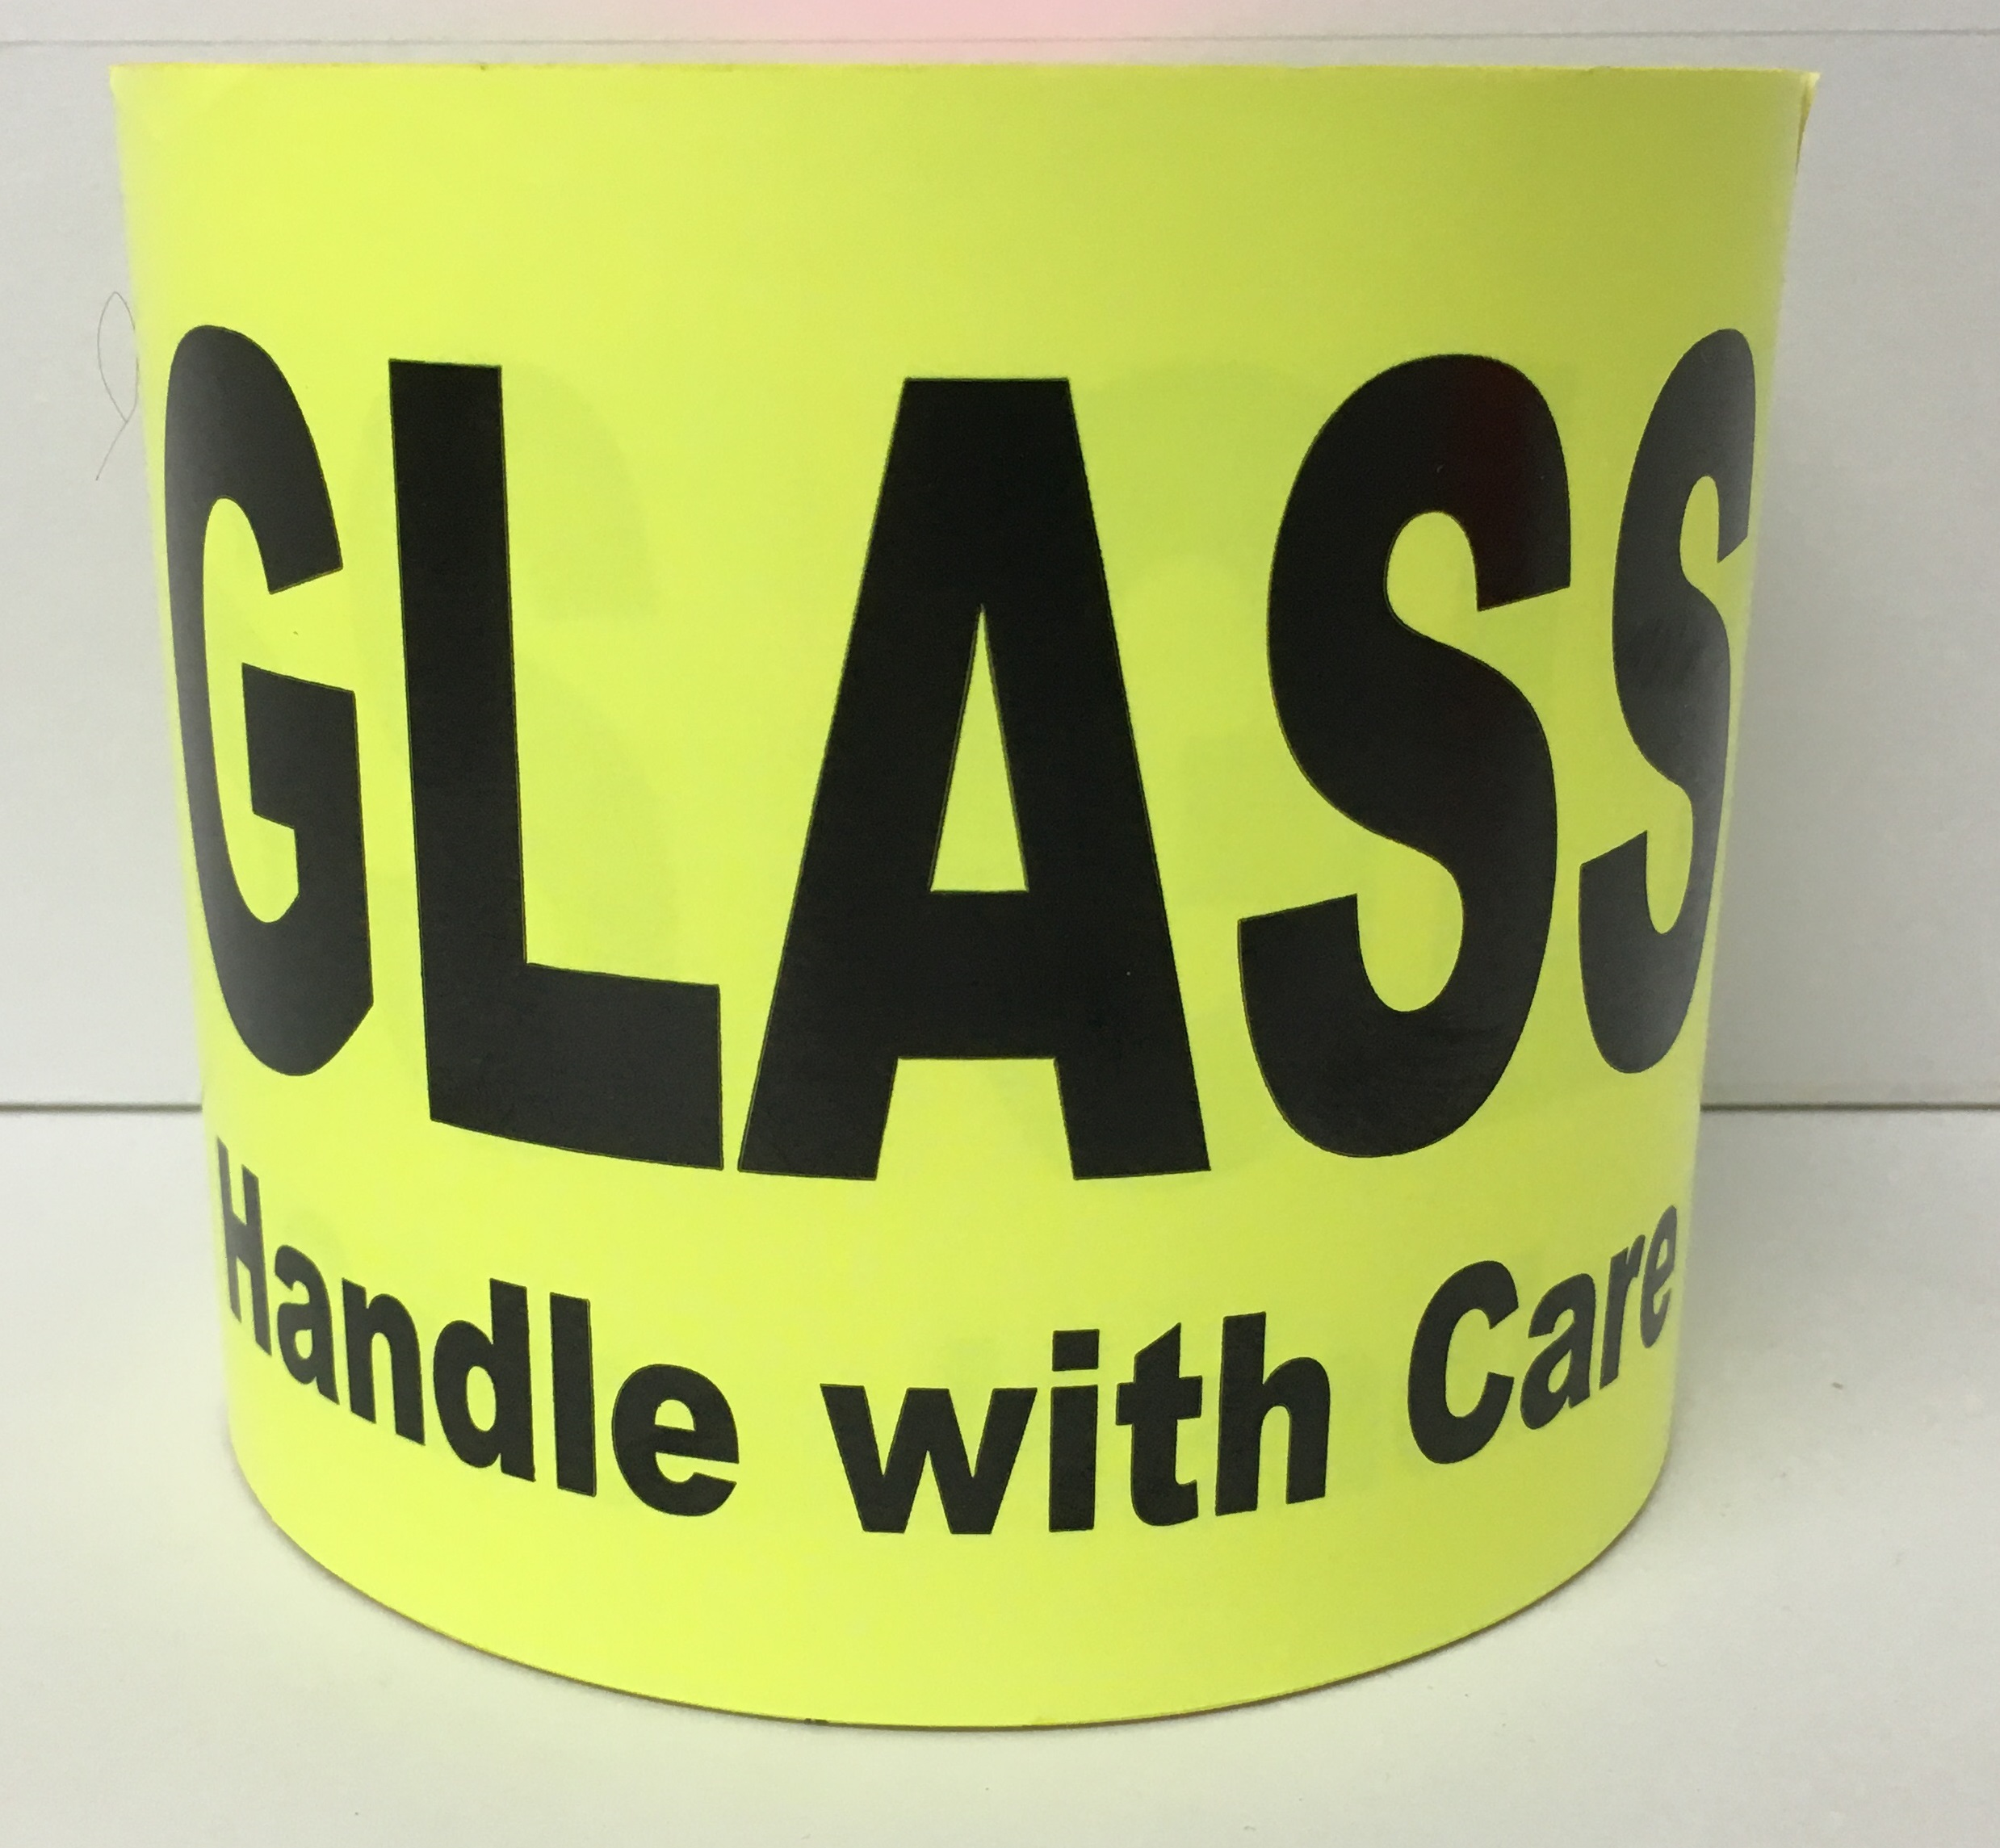 """GLASS Handle with Care - Br/Yellow 4"""" x 6"""", 250 Labels Per Roll"""